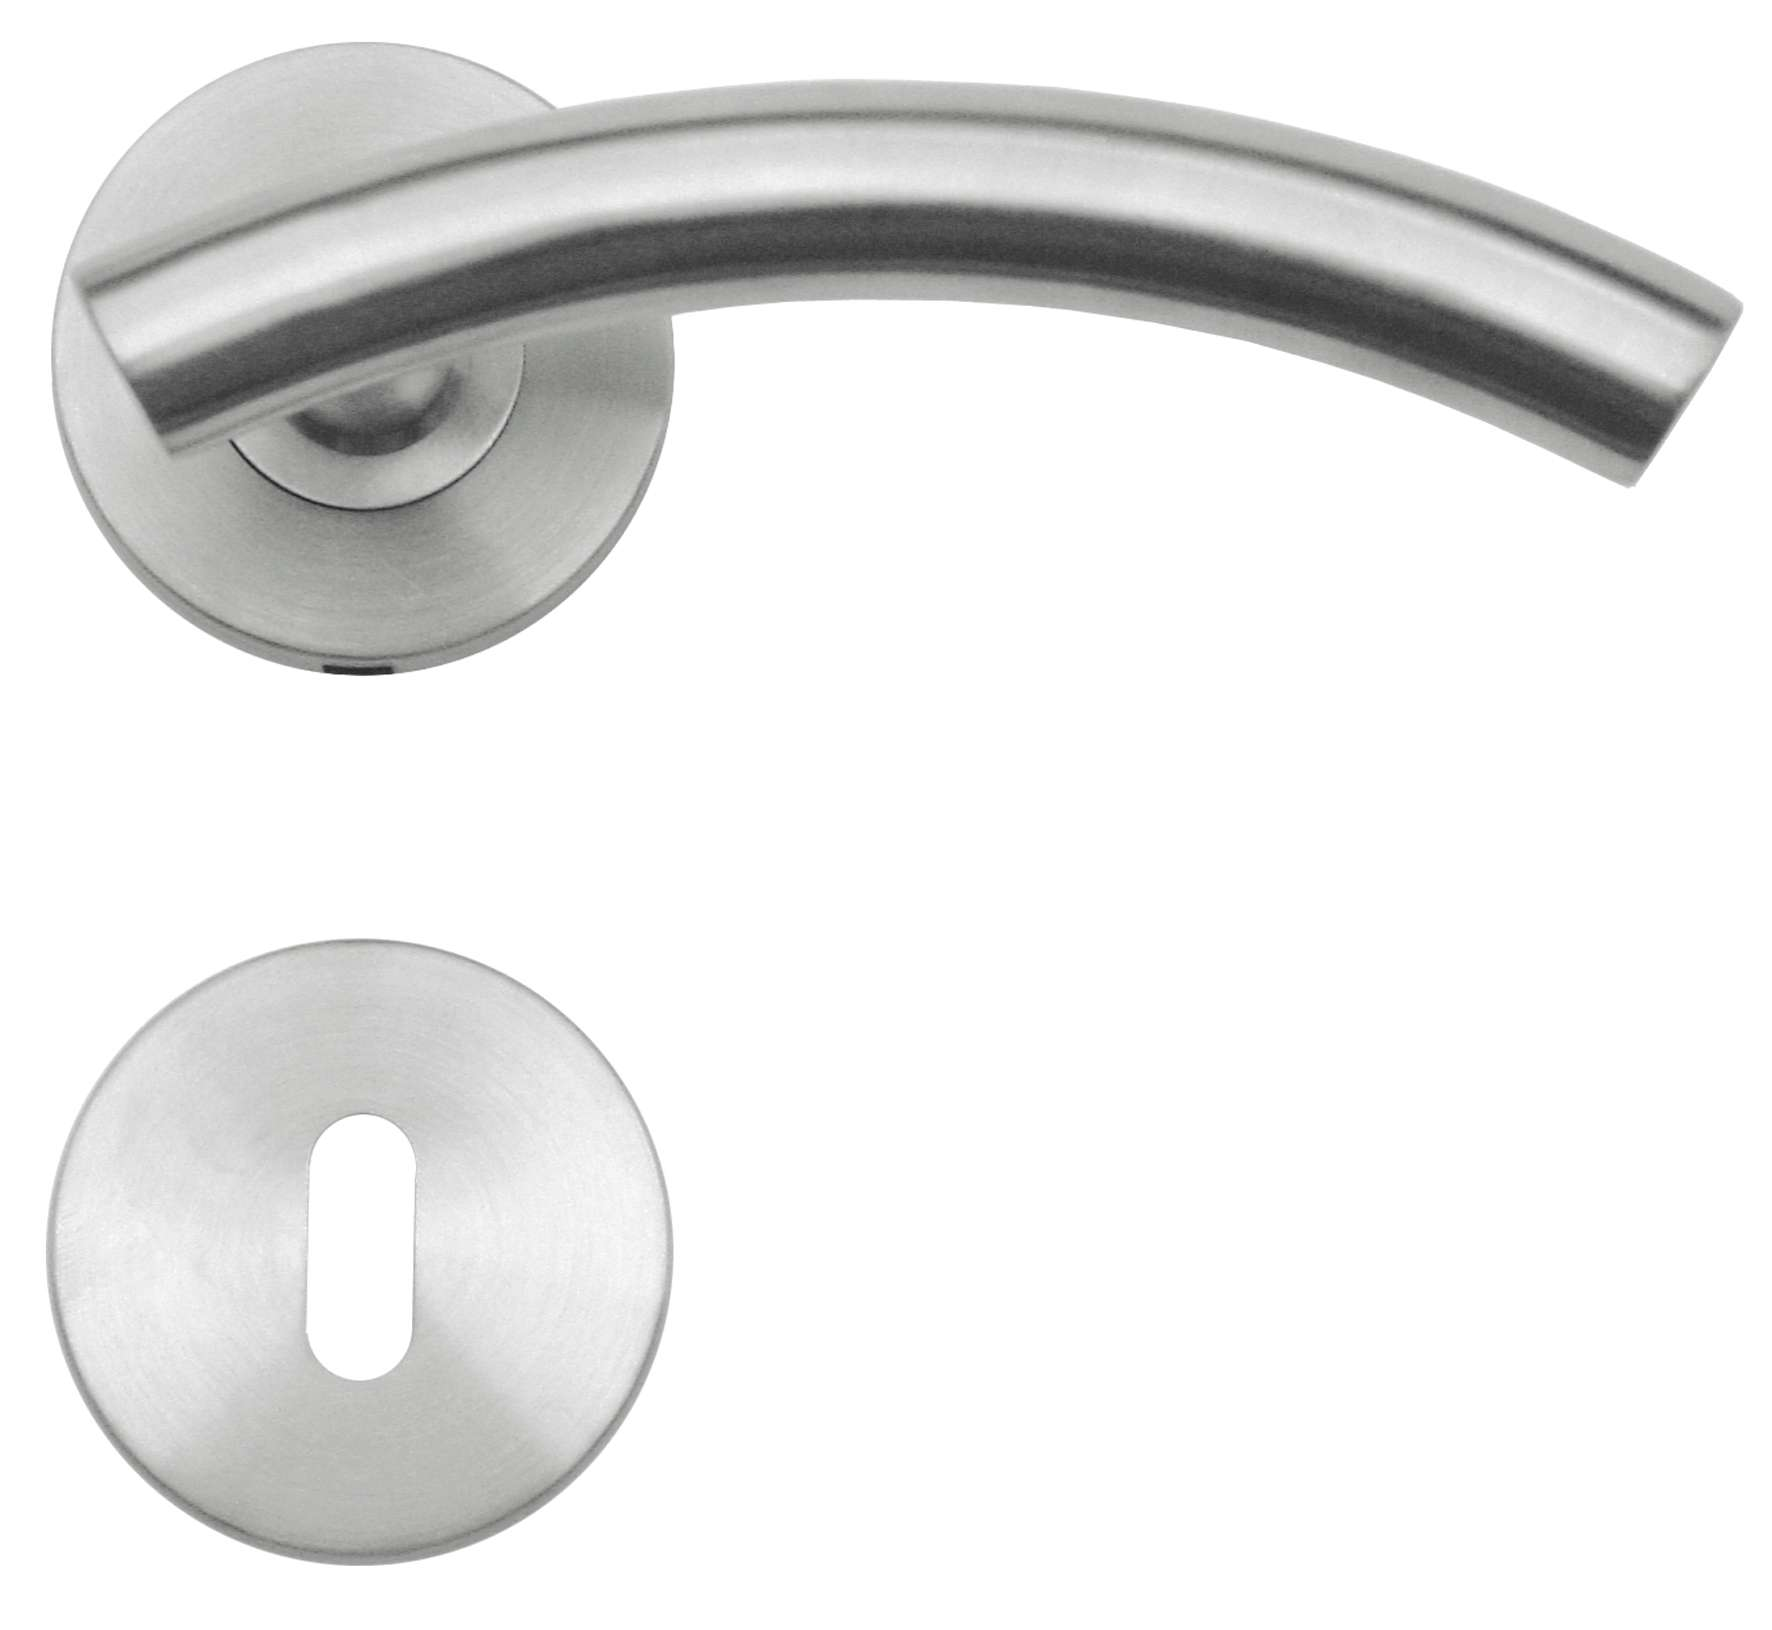 BEQUILLE GT SHAPE 19MM INOX PLUS R+E